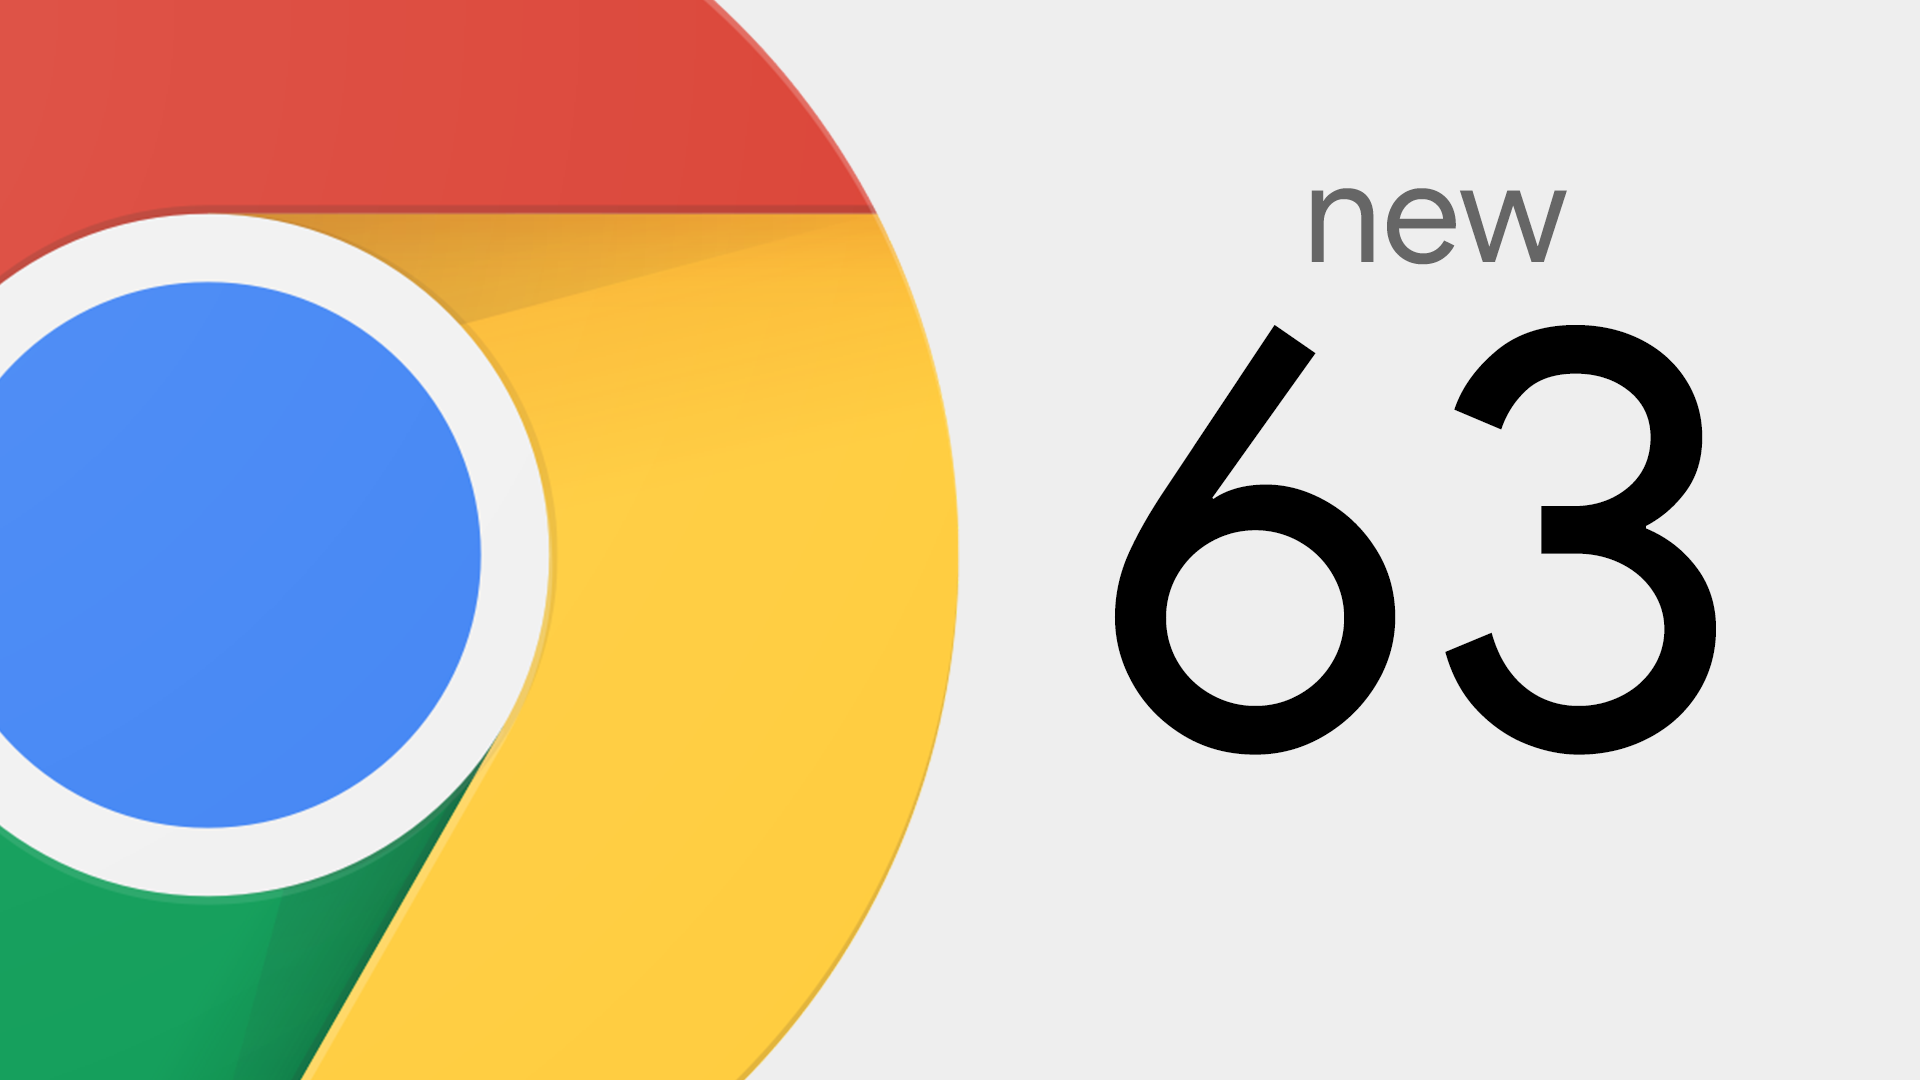 New in Chrome 63